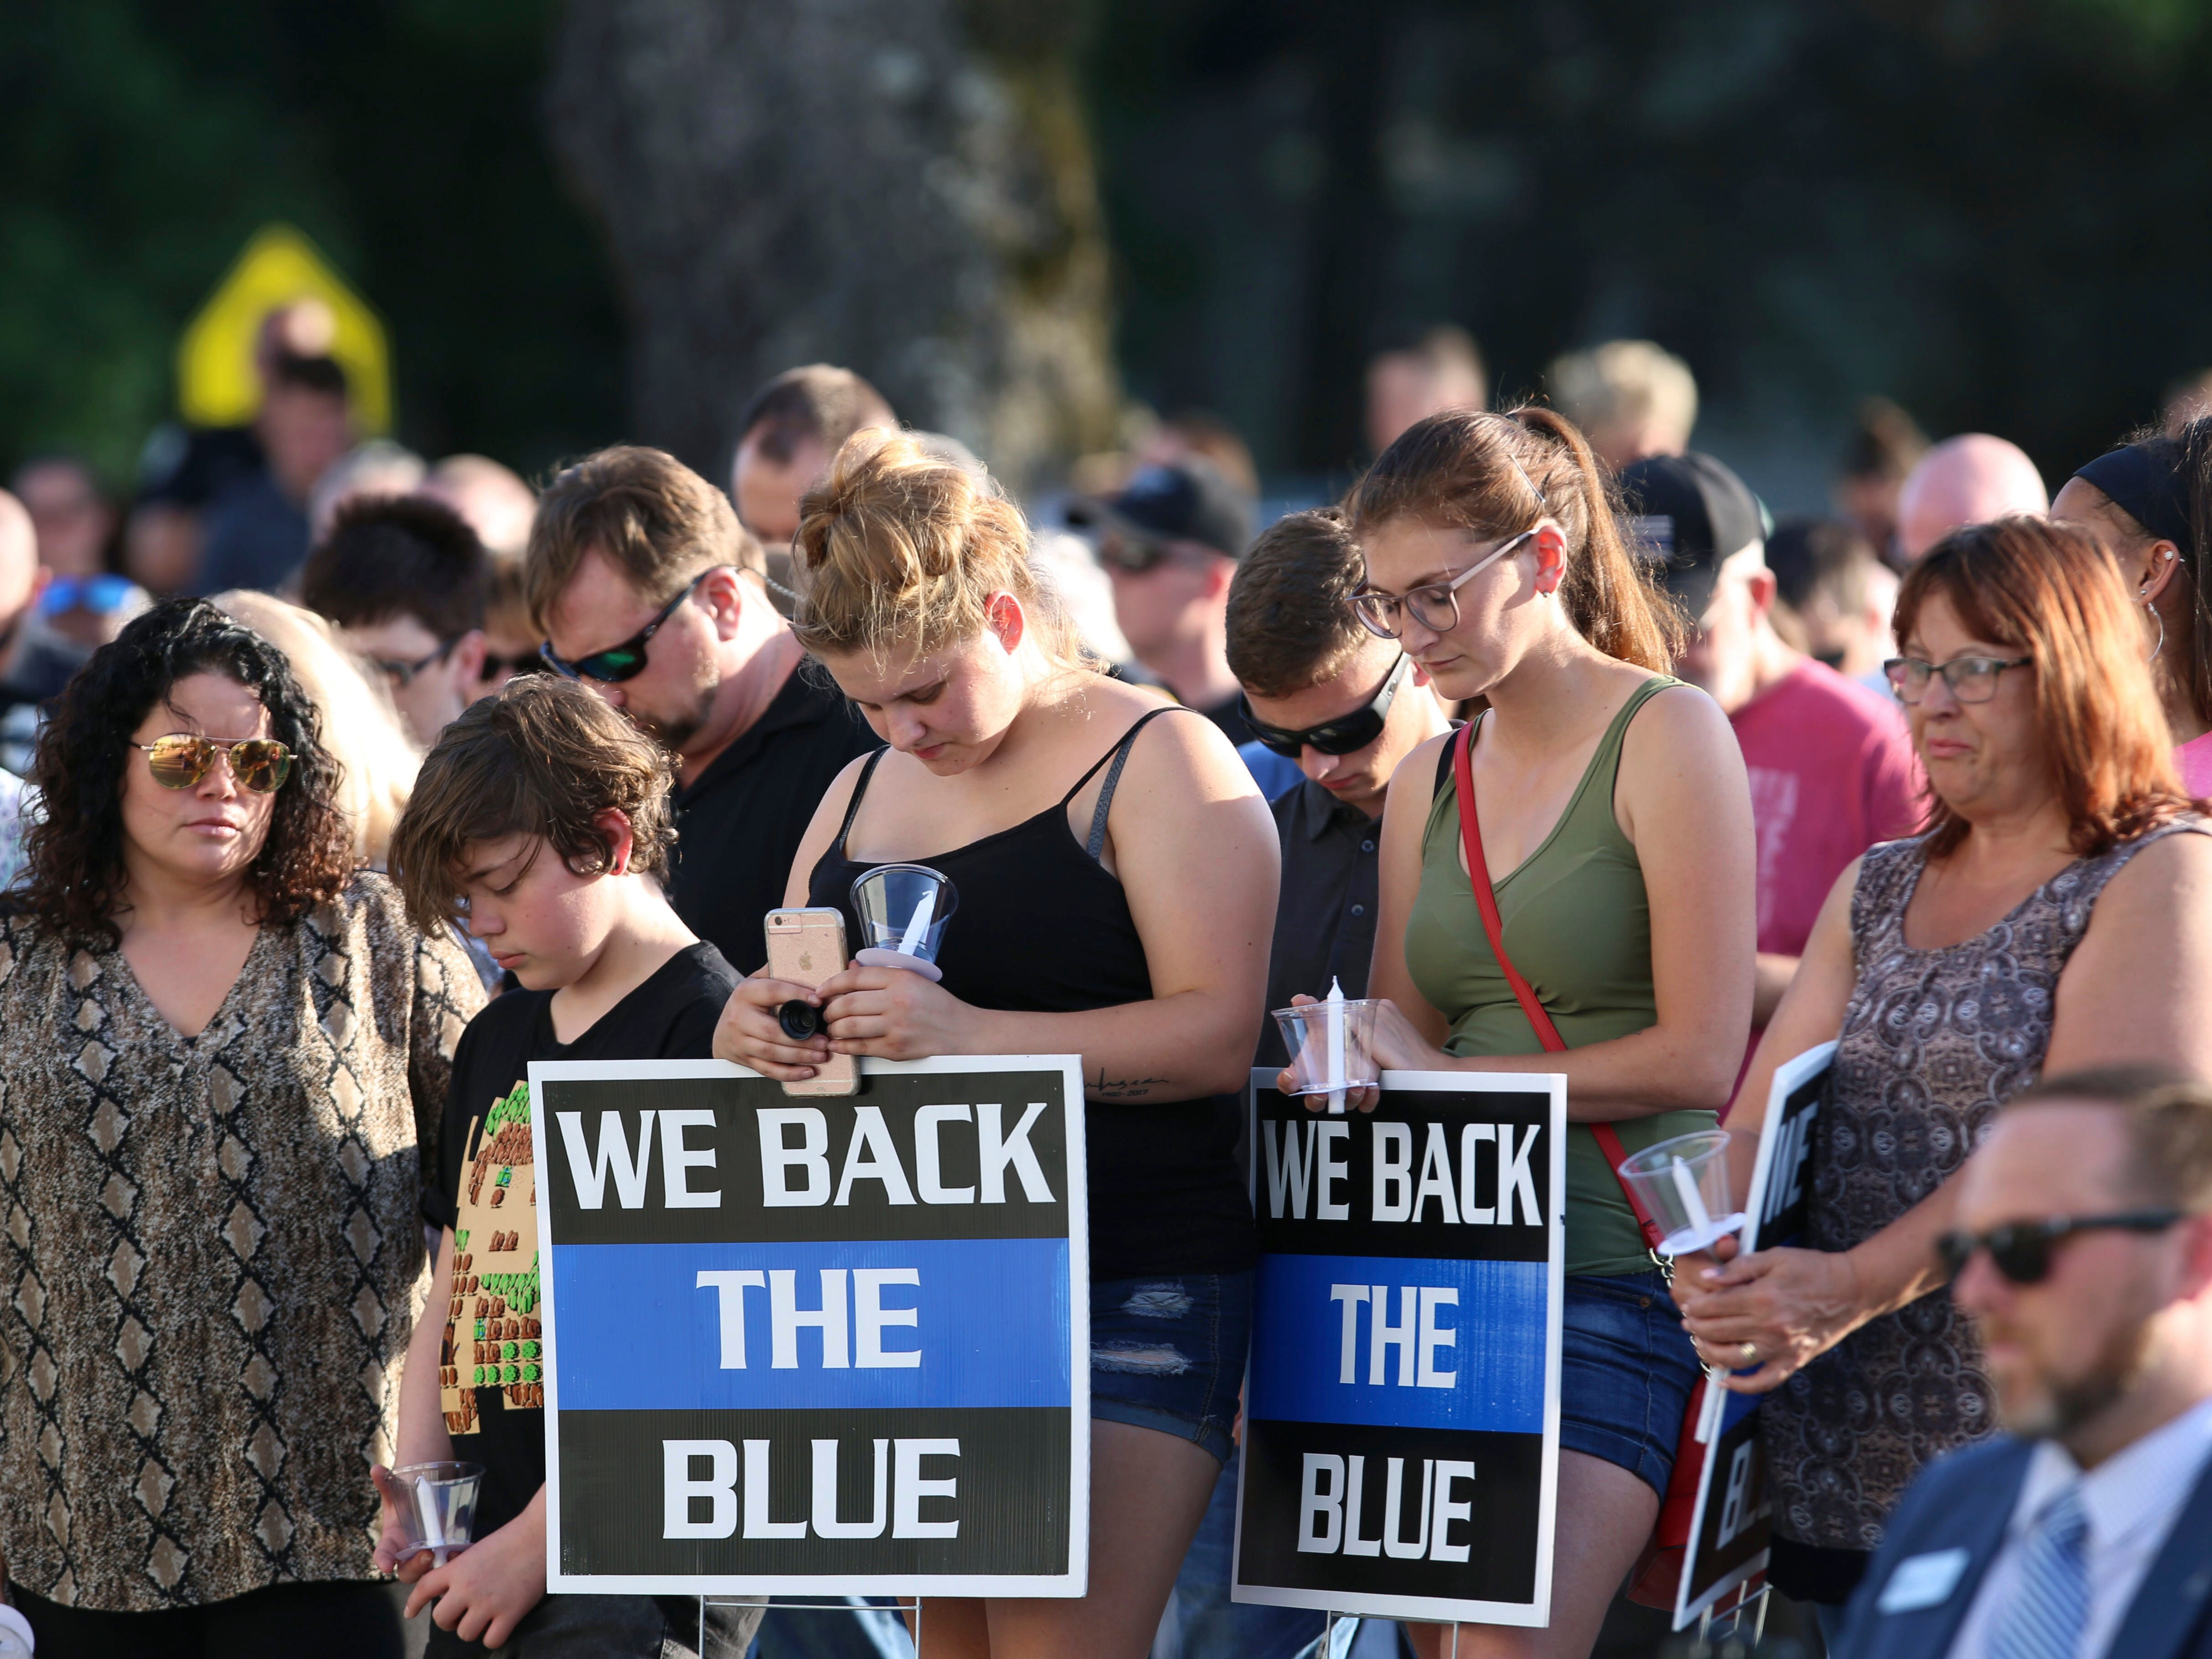 Dozens of people bowed their heads to honor fallen Biloxi police officer Robert McKeithen during a prayer vigil on Tuesday, May 7, 2019, outside the police department in Biloxi, Miss. A Biloxi police officer, McKeithen died after being shot multiple times in the parking lot of the Biloxi Police Department, Sunday night.